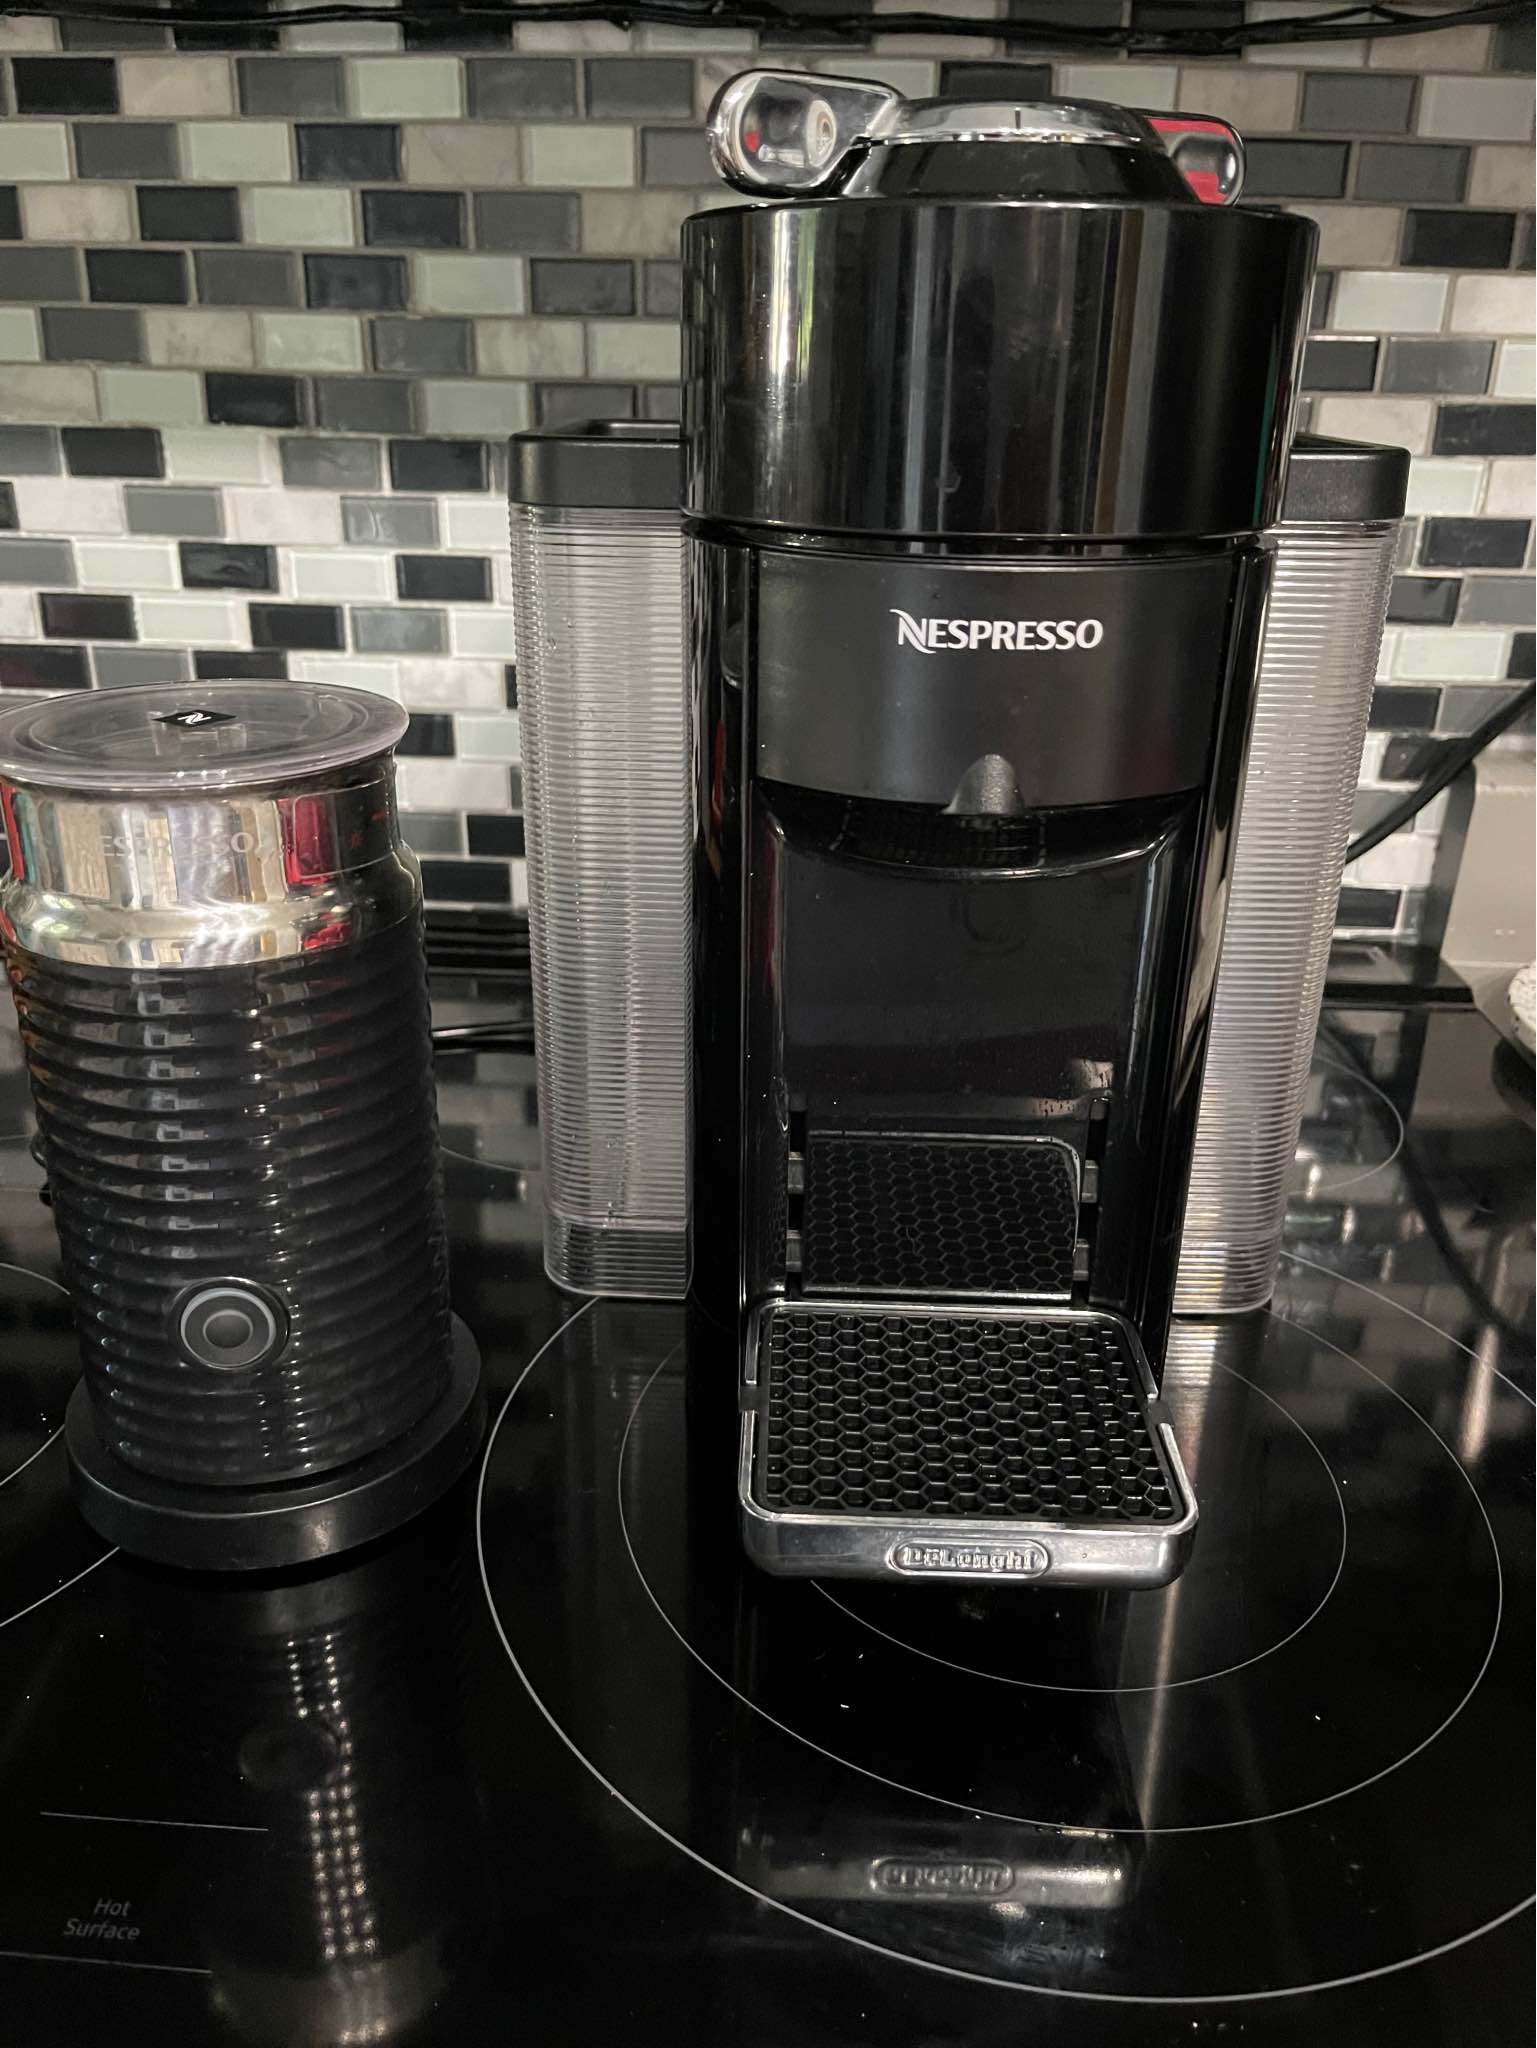 Delonghi Nespresso Vertuo is equipped with a flow-stop system